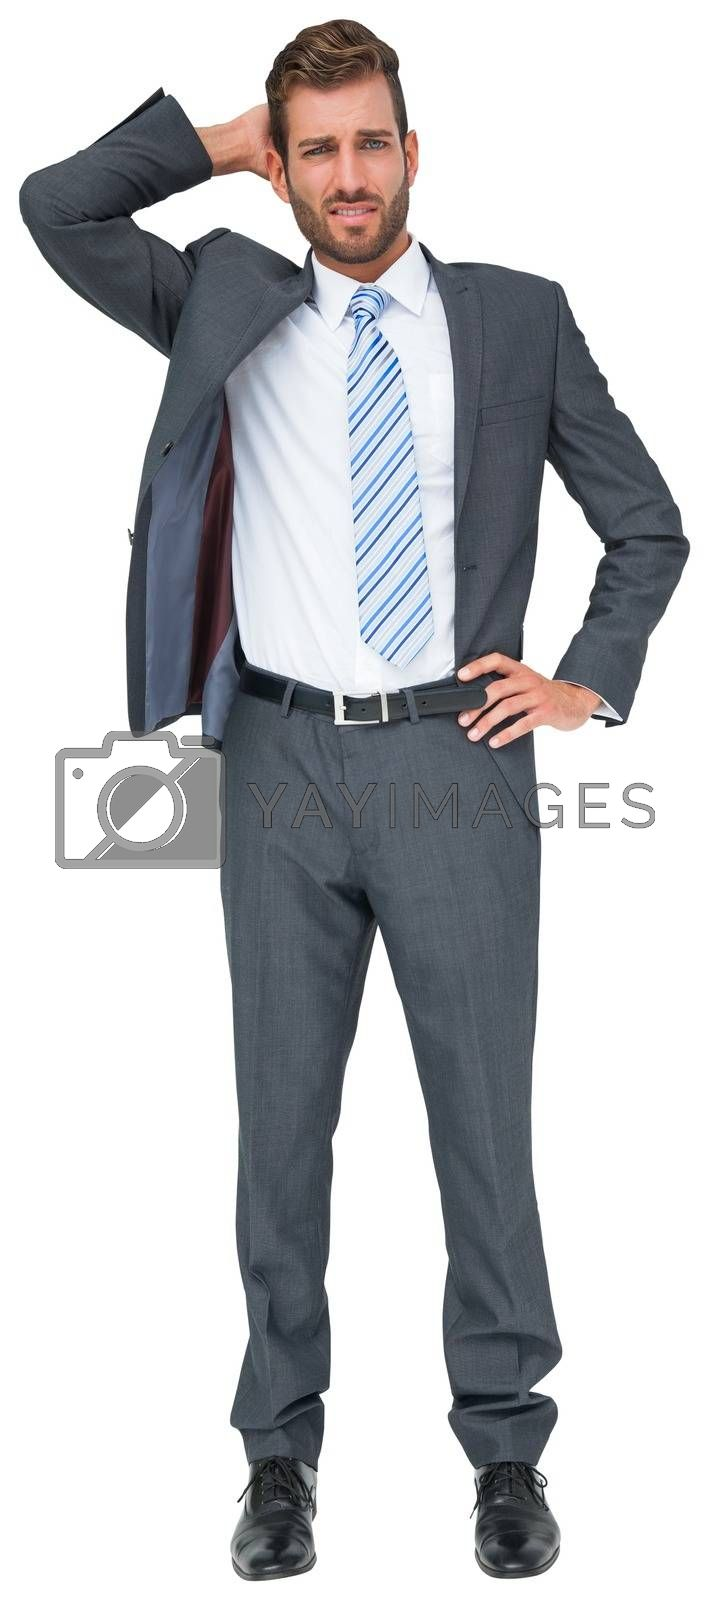 Royalty free image of Thinking businessman with hand on head by Wavebreakmedia